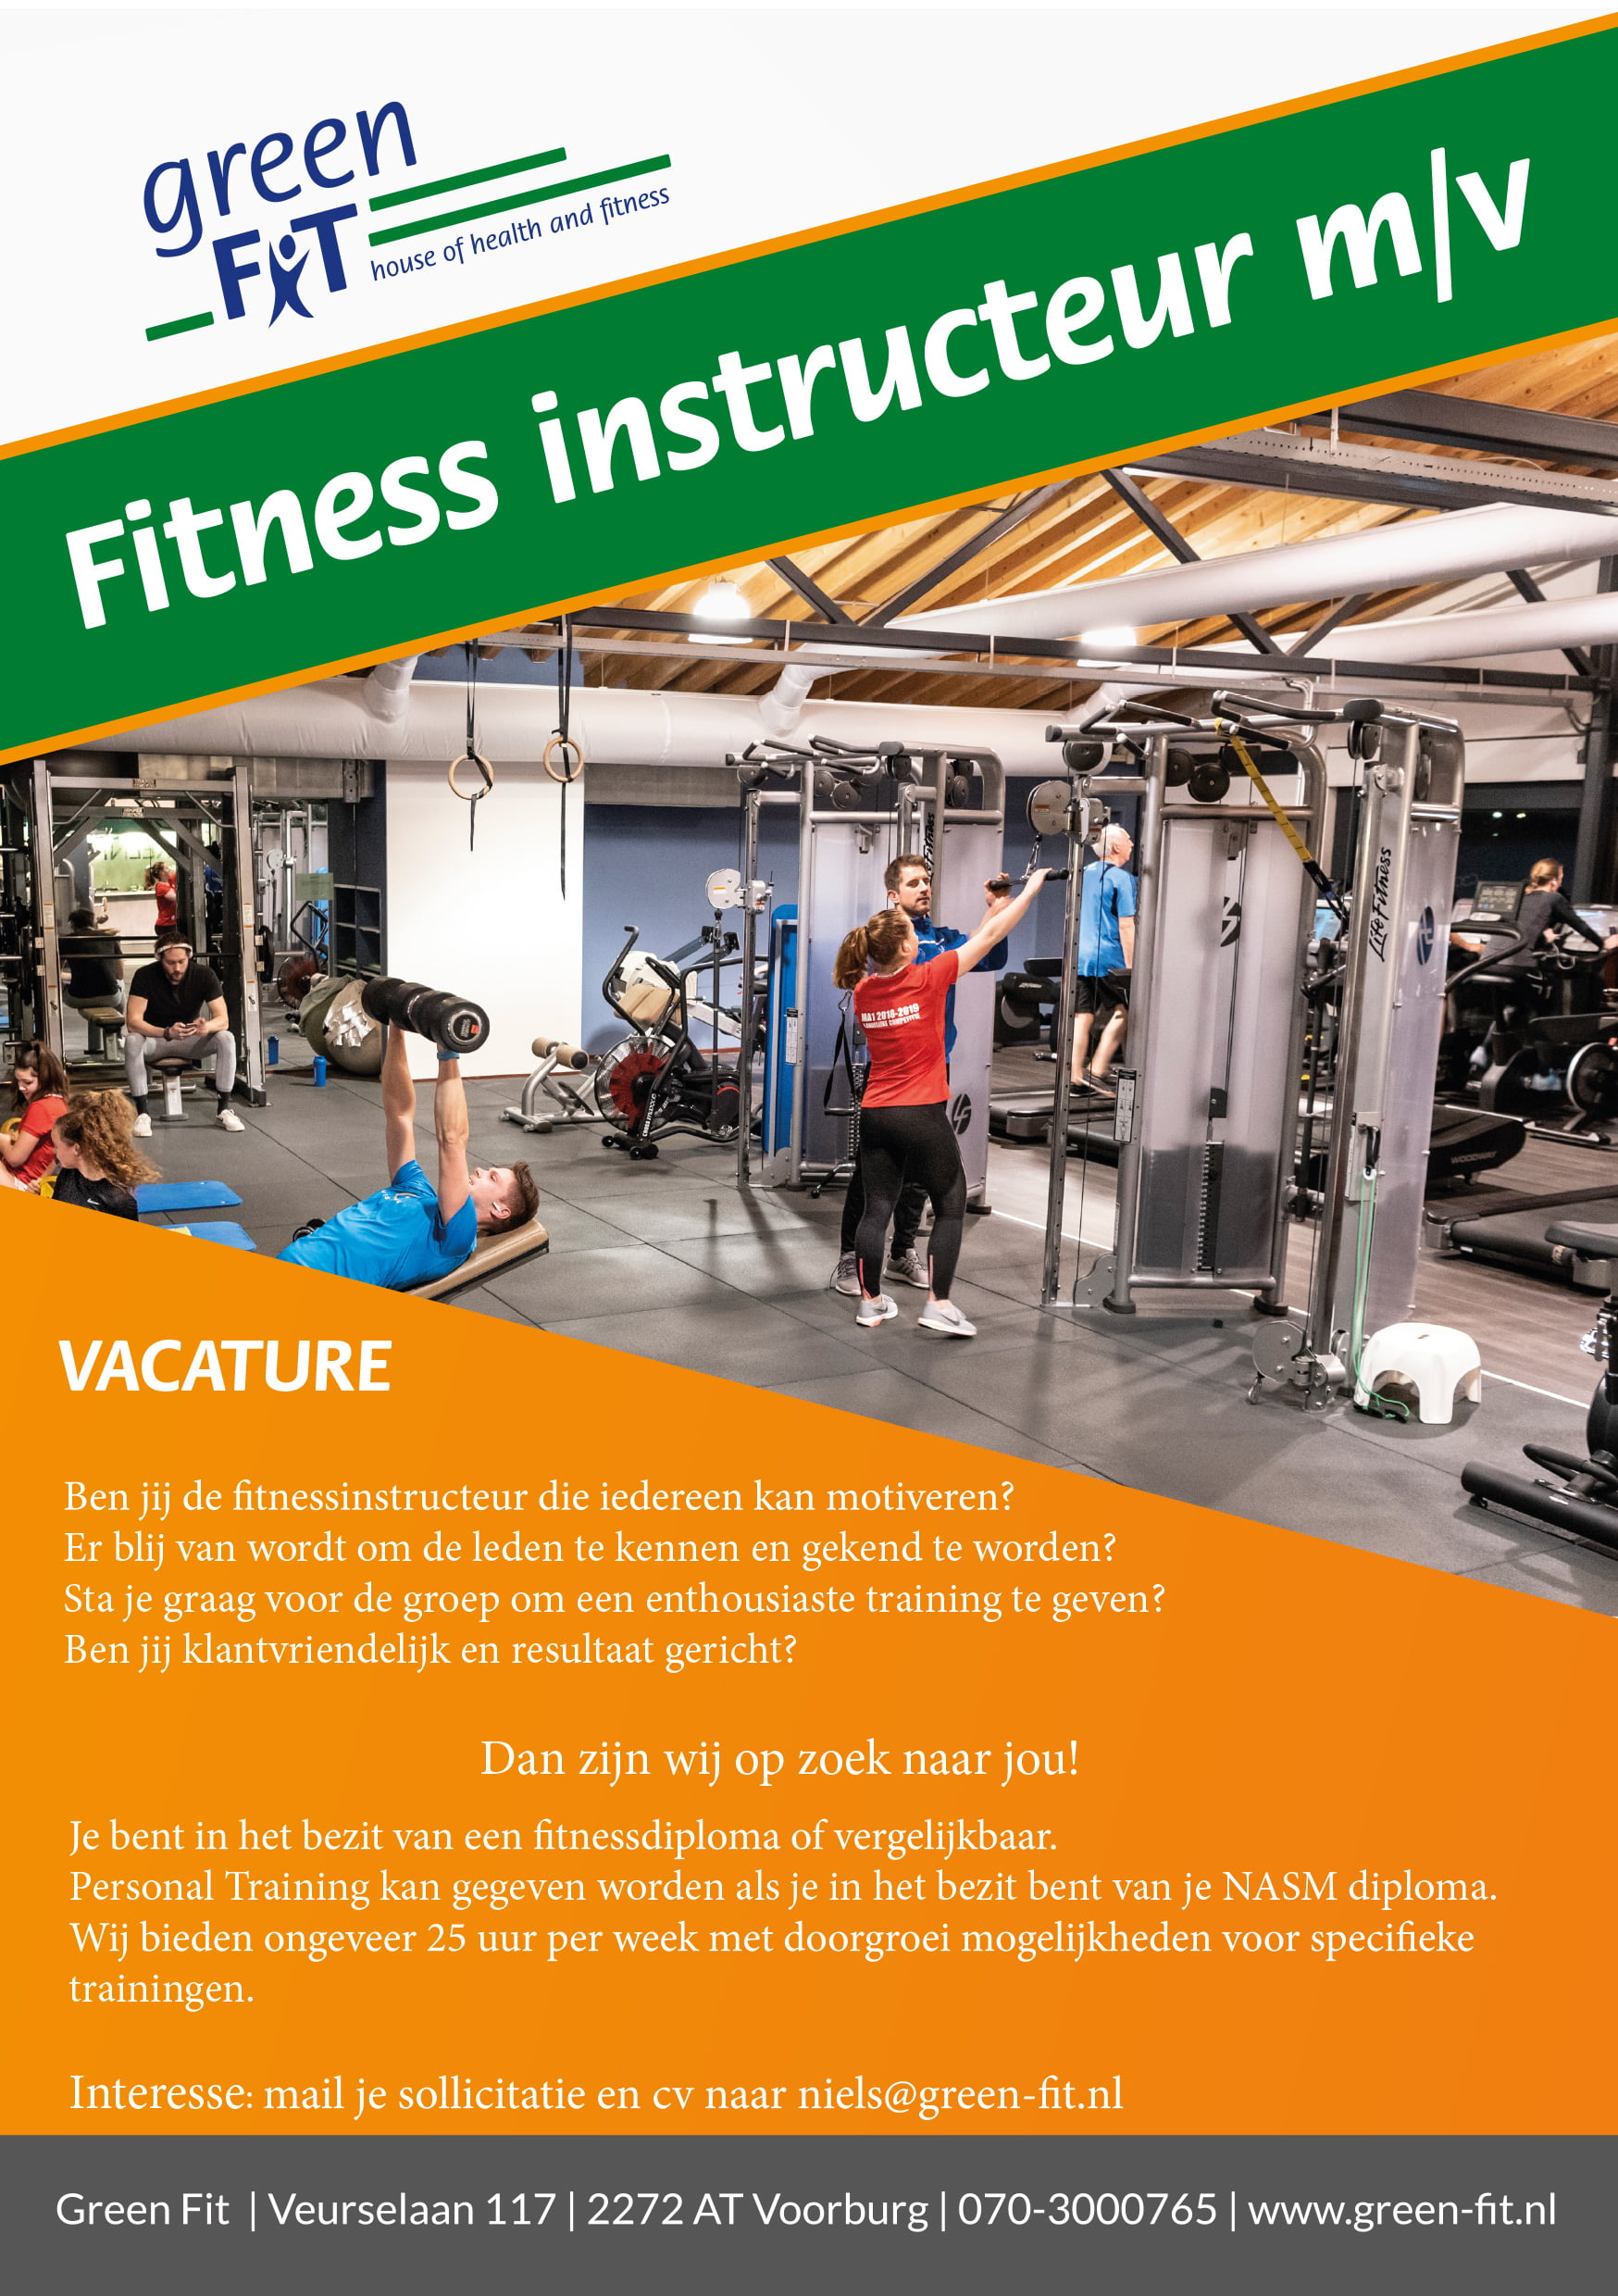 Green-fit - Vacature groepsles instructeur